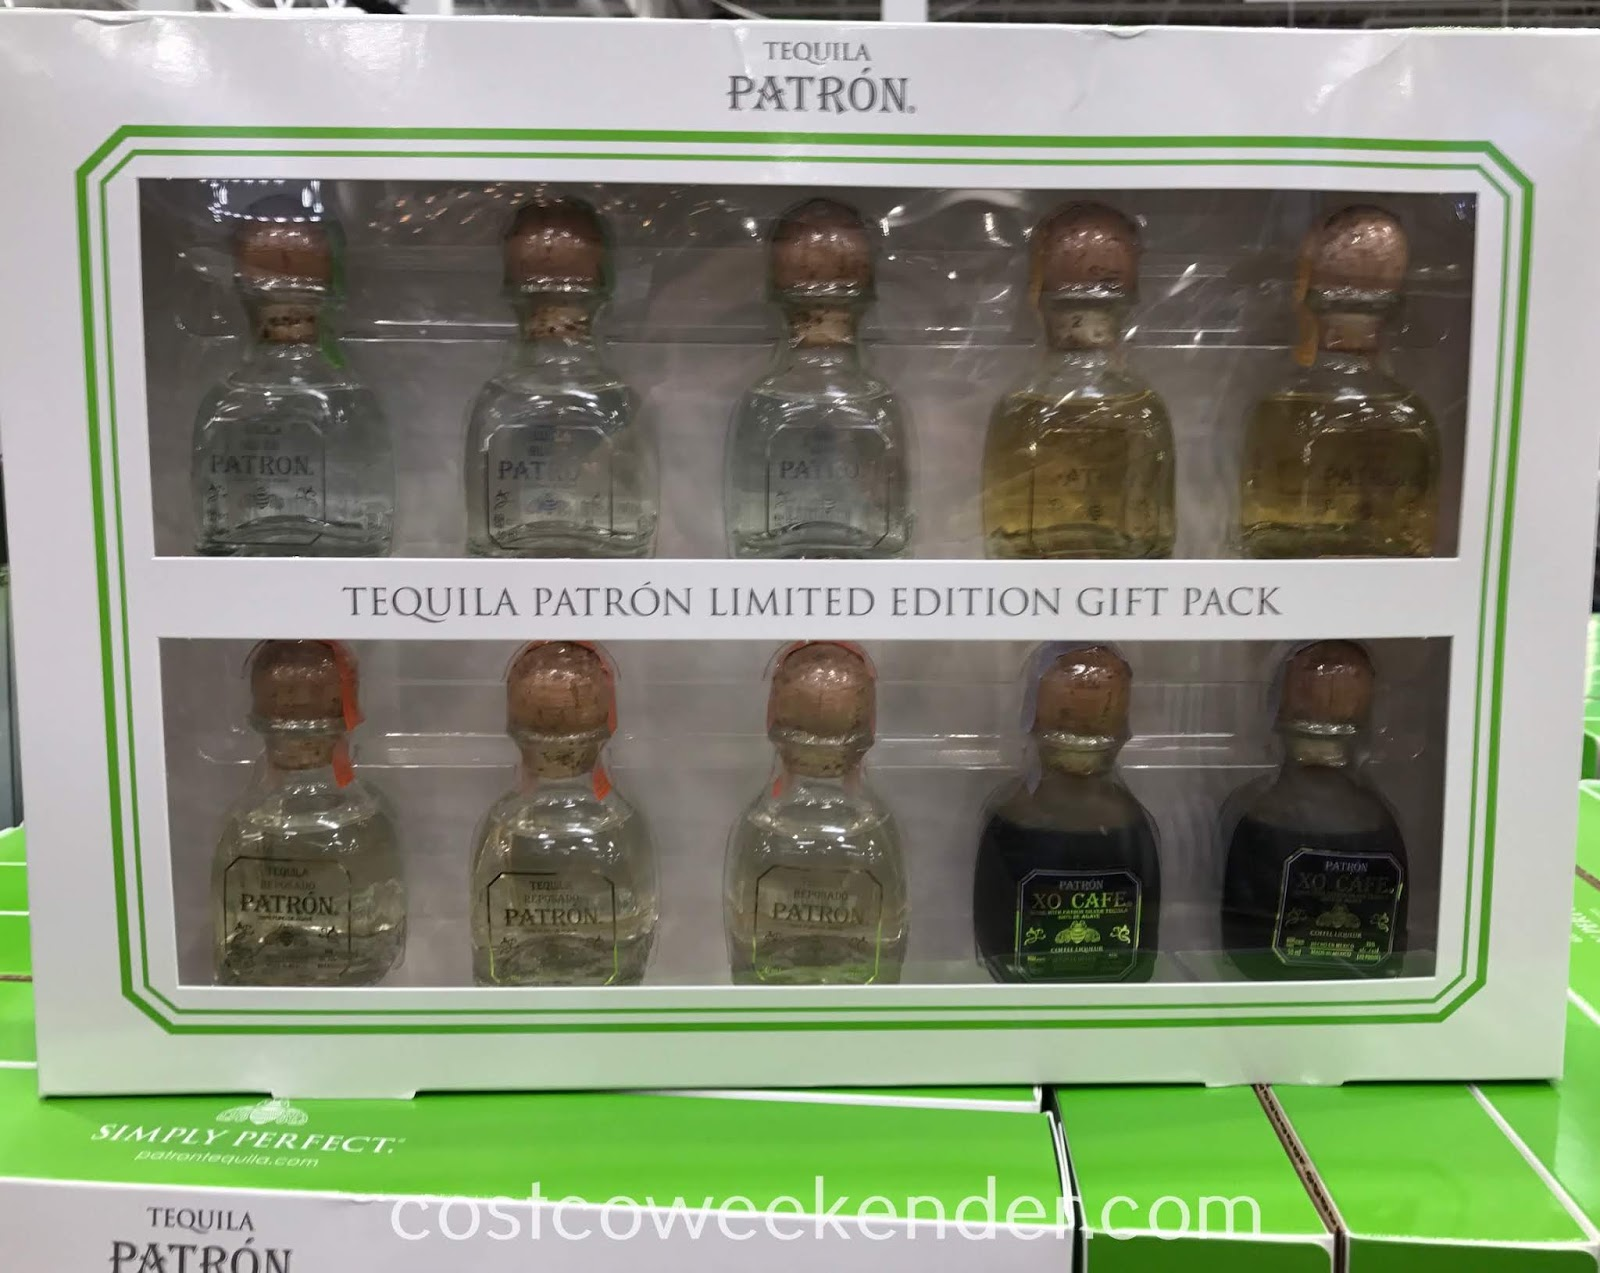 Enjoy a variety of tequila flavors with the Patron Tequila Limited Edition Gift Pack